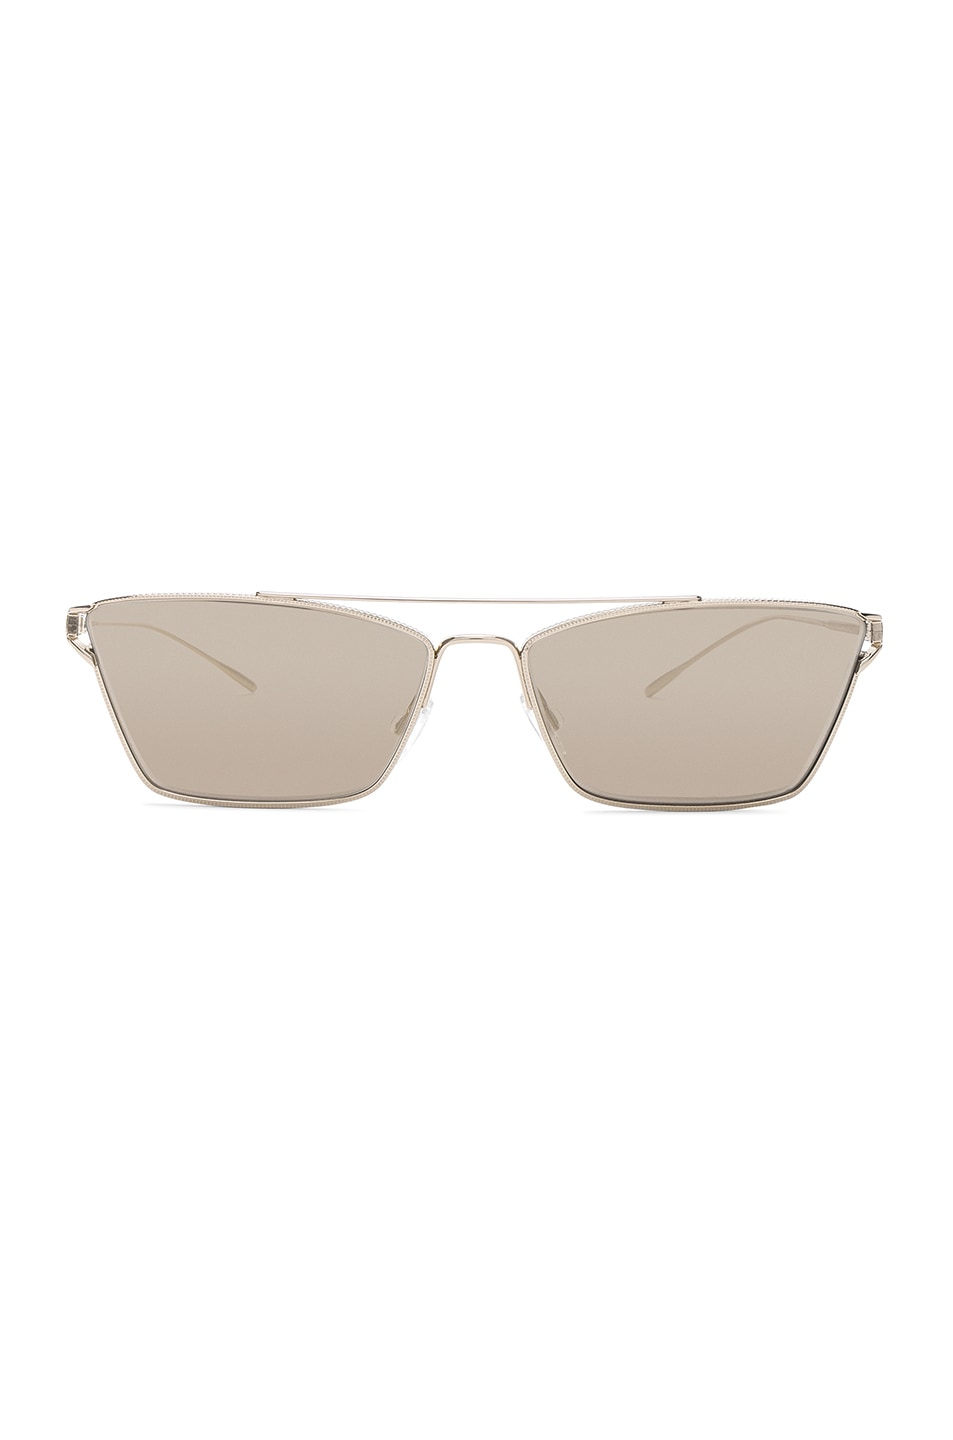 Image 1 of Oliver Peoples Evey Sunglasses in Gold & Taupe Flash Mirror